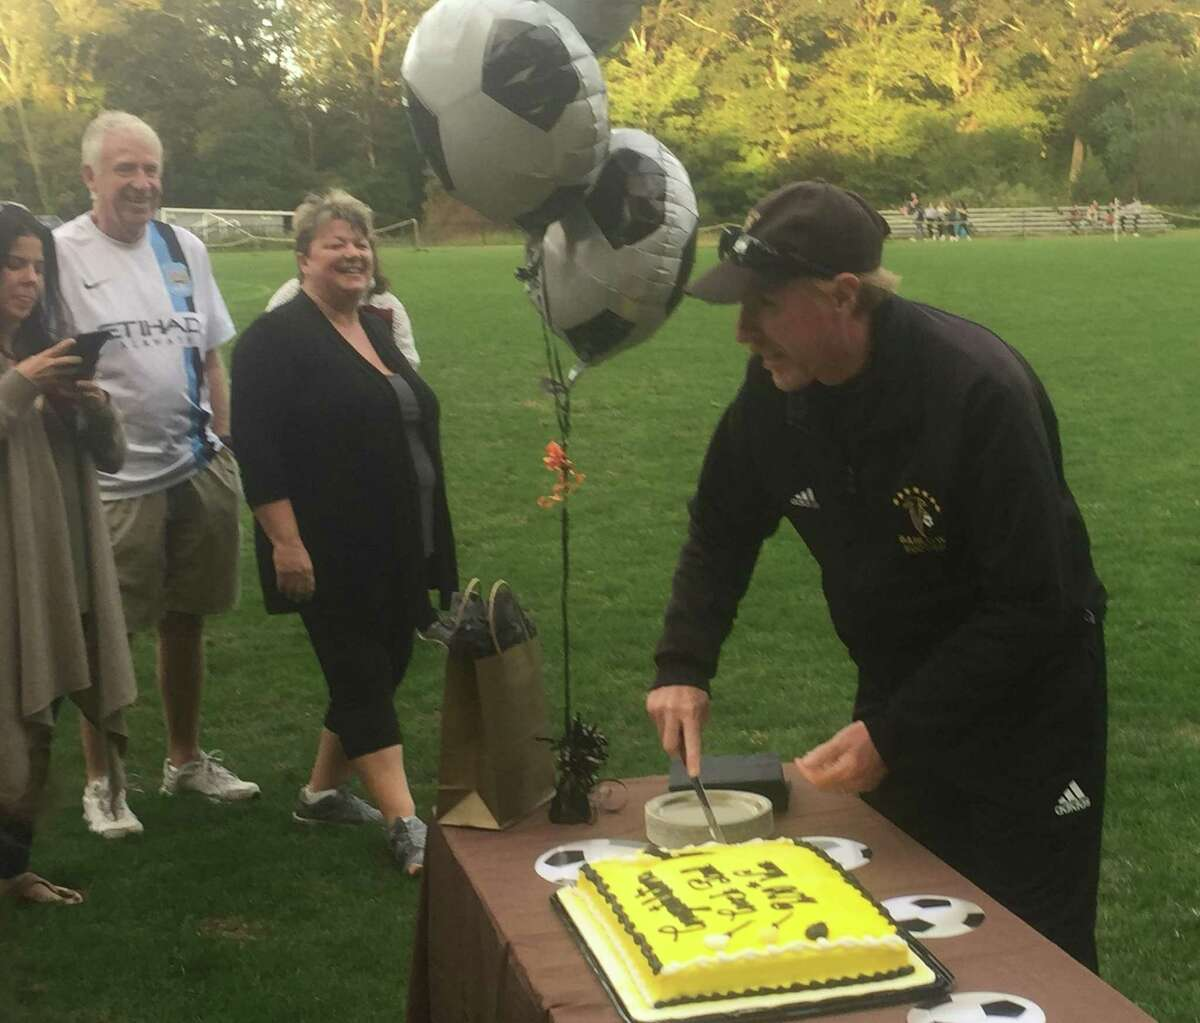 Joel Barlow High School boys soccer coach Paul Winstanley makes the first slice into a cake celebrating his 200th career victory following the Falcons' 3-1 victory over Naugatuck at Joel Barlow High School in Renning, Sept. 29, 2018.